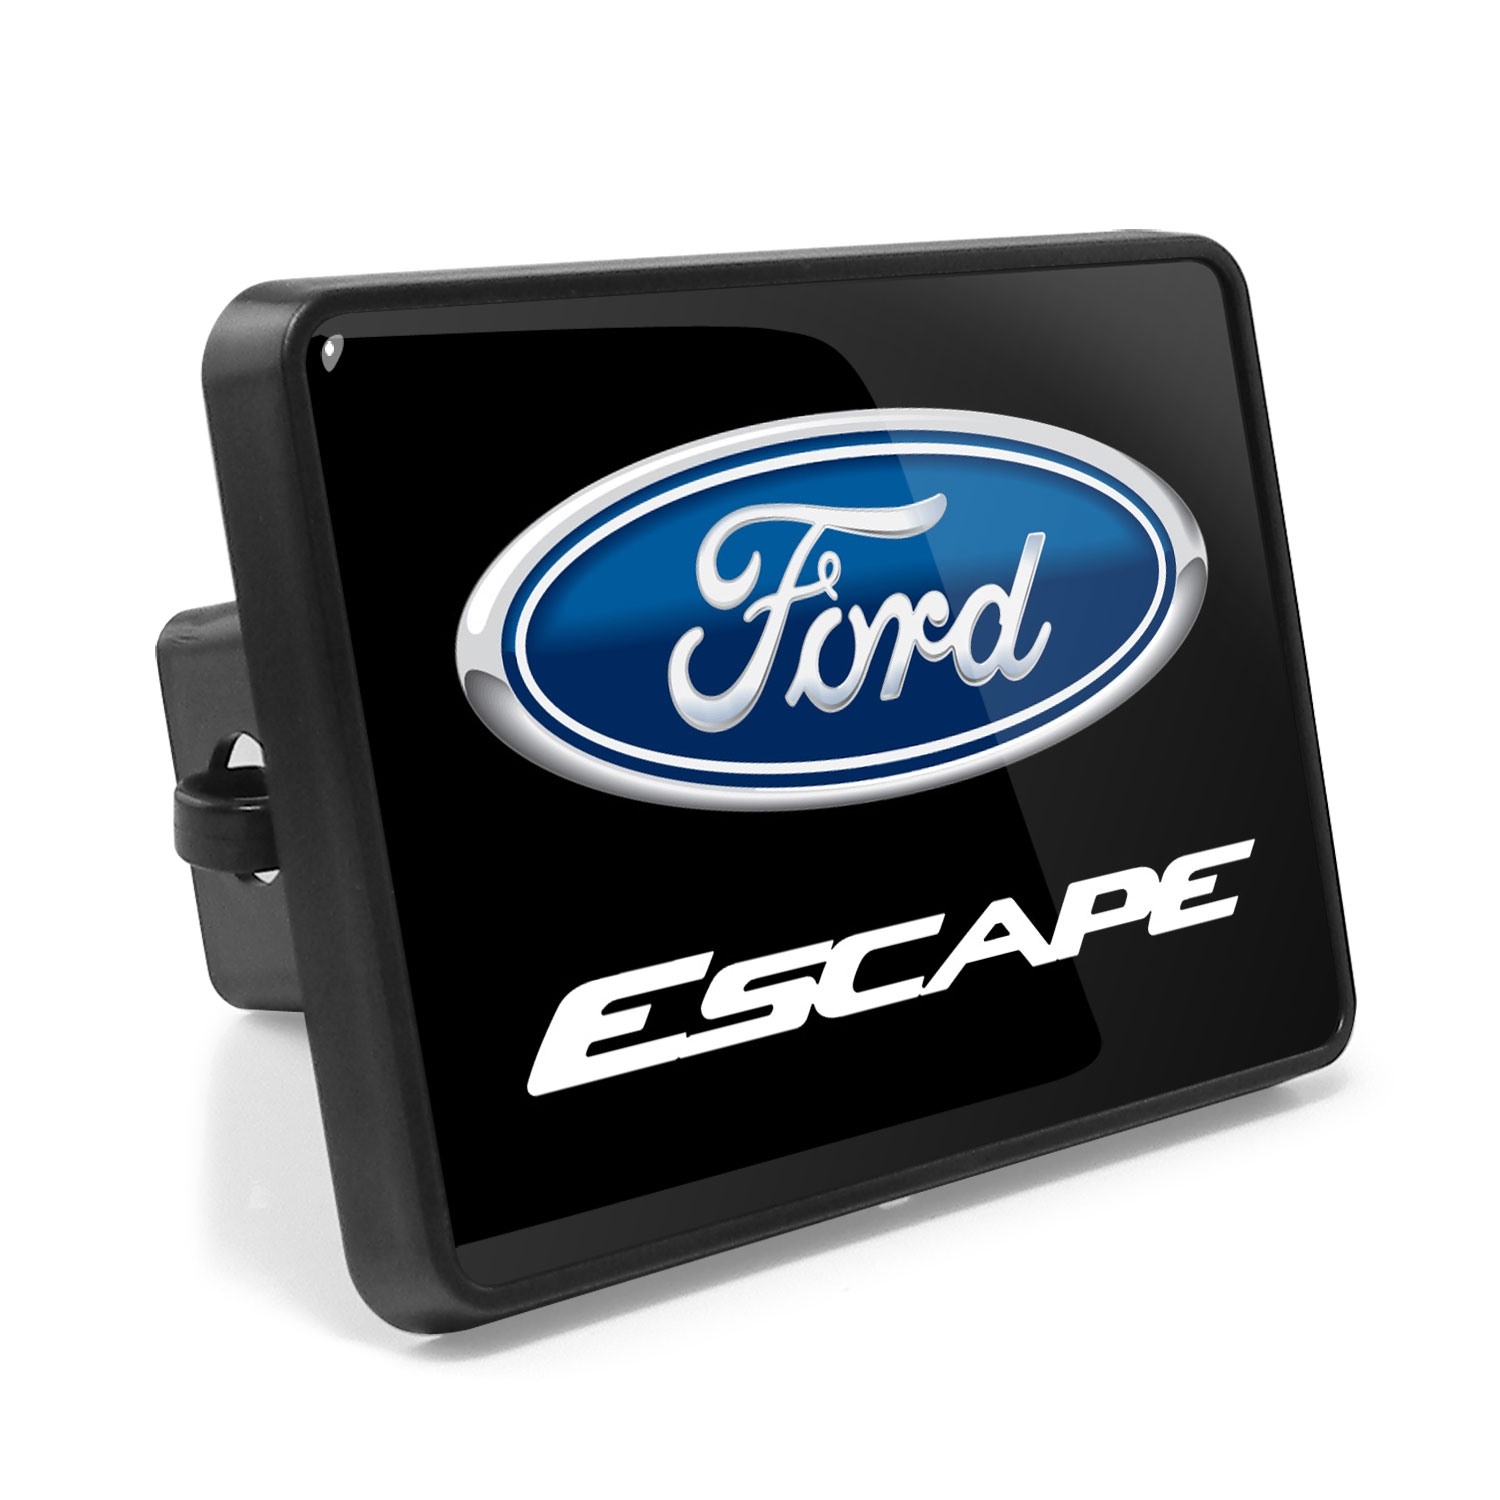 Ford Escape UV Graphic Metal Plate on ABS Plastic 2 inch Tow Hitch Cover